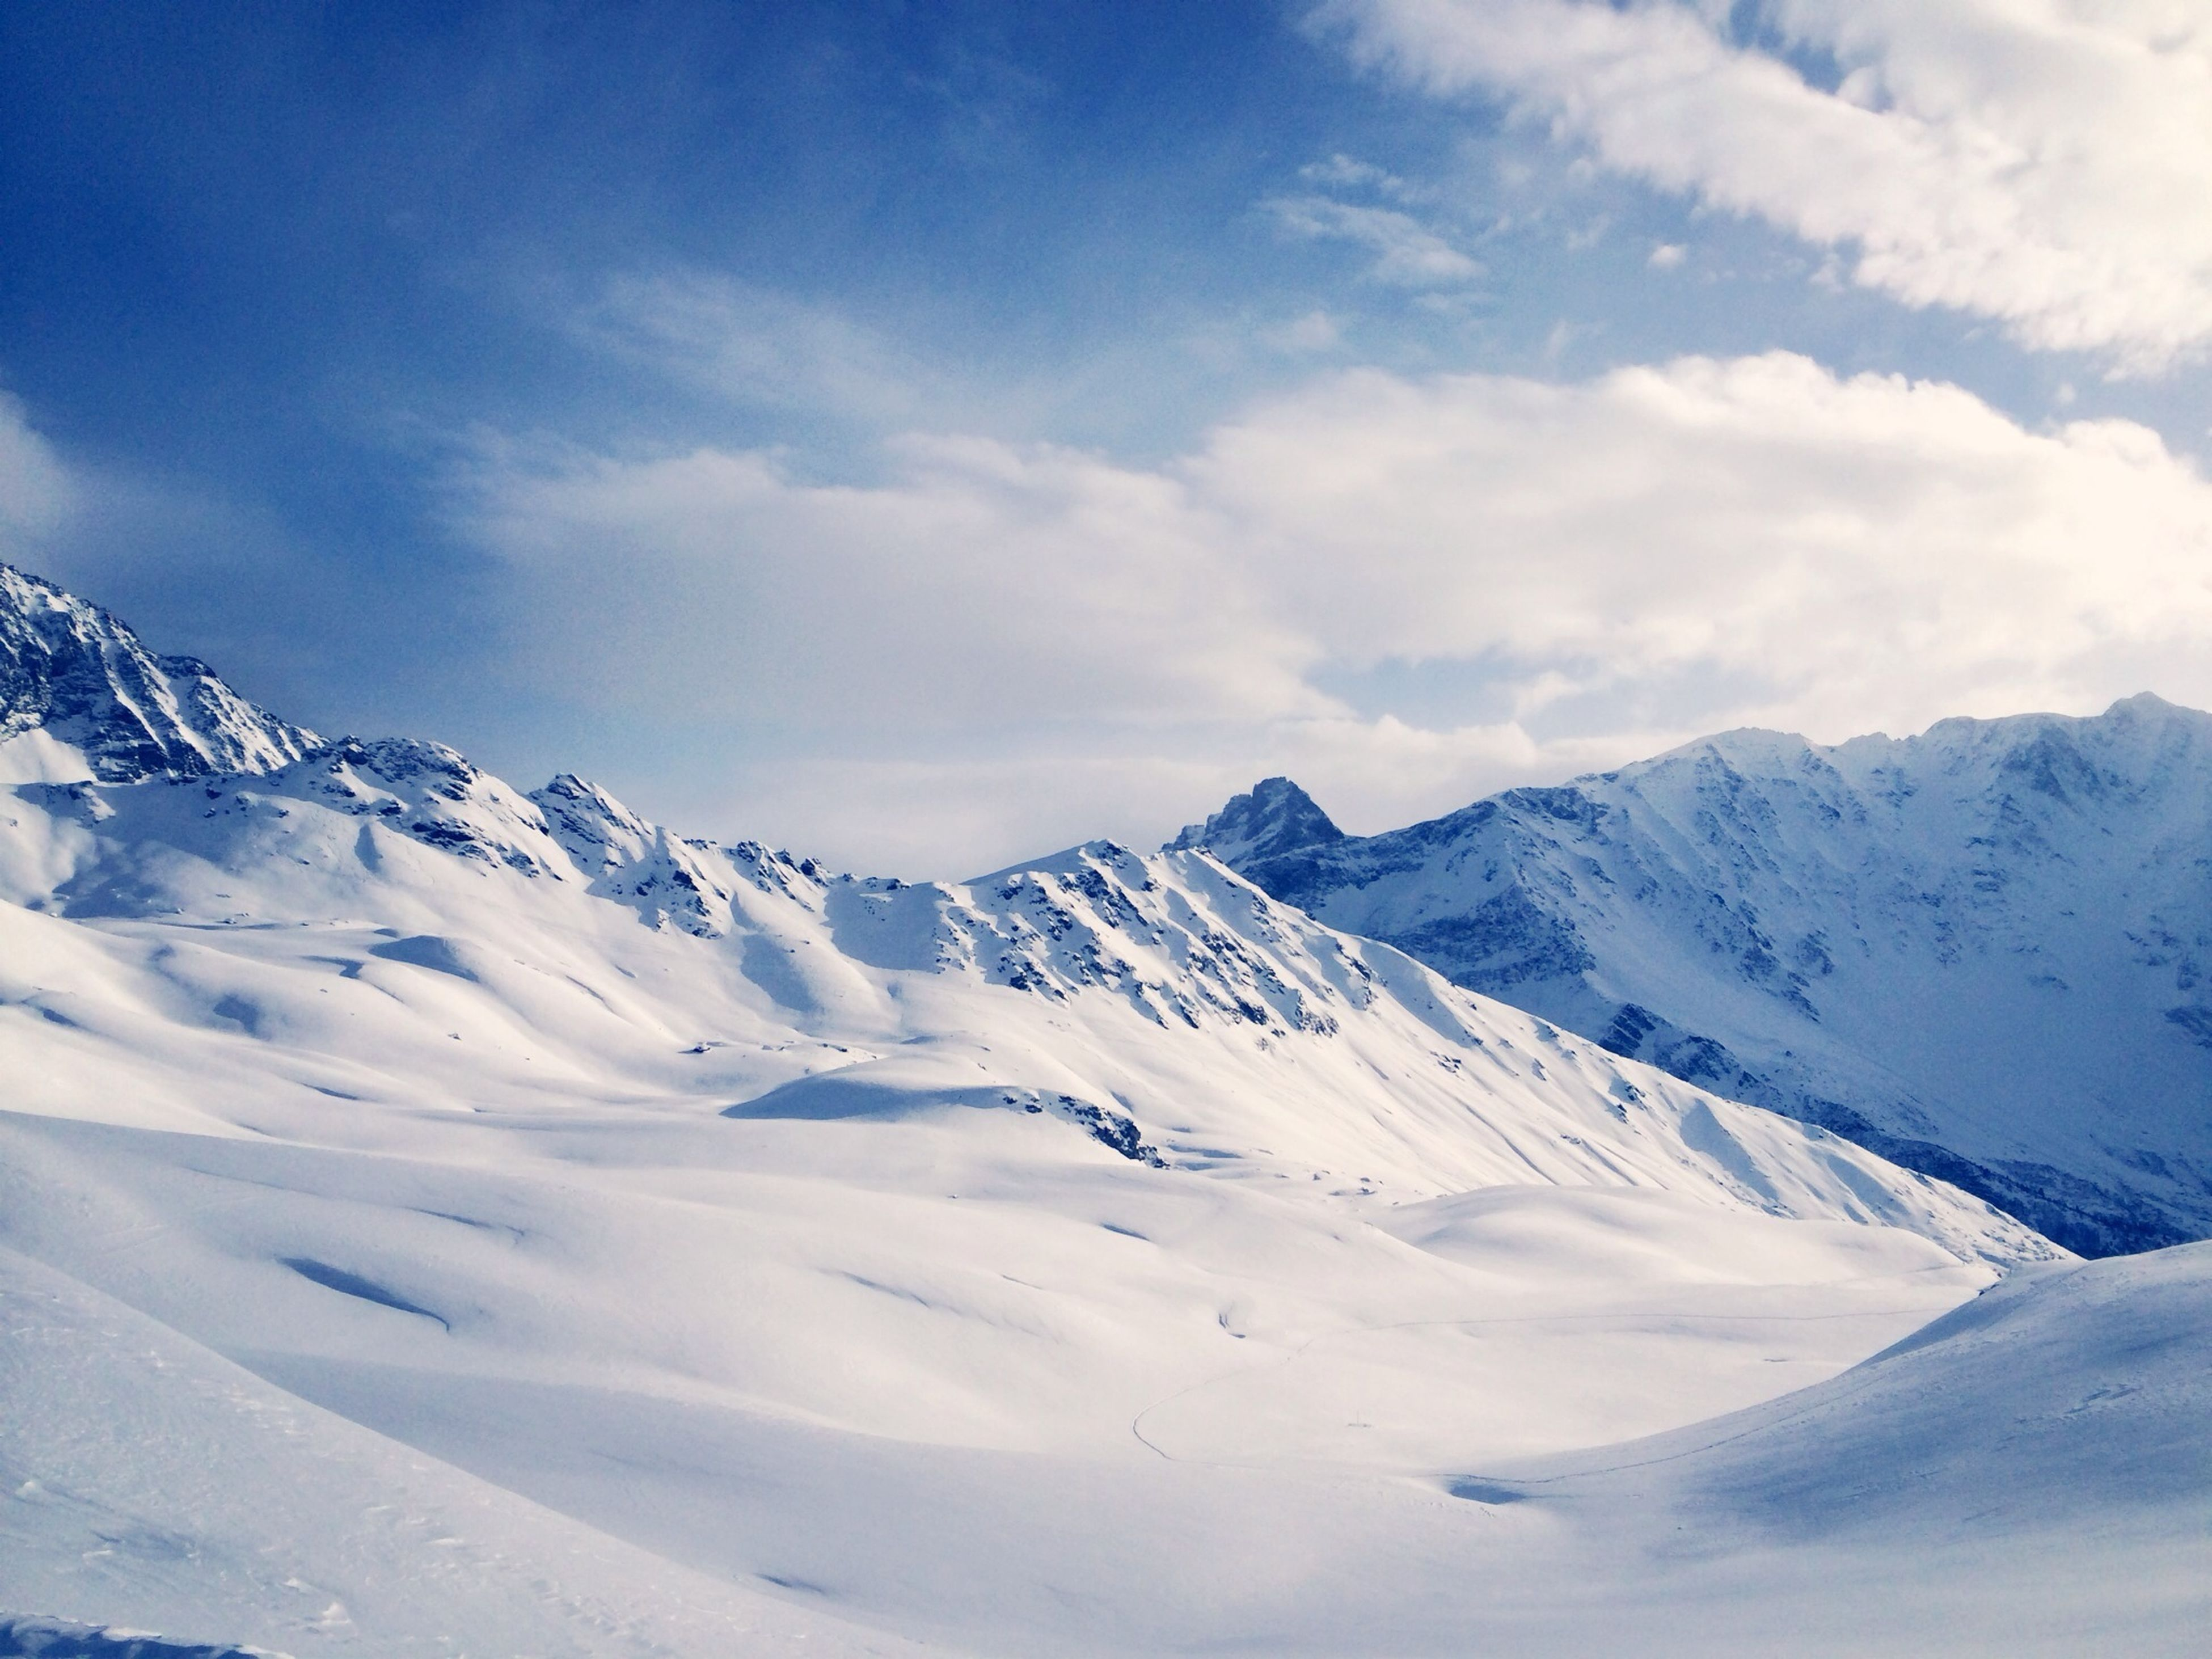 snow, winter, cold temperature, mountain, season, snowcapped mountain, weather, mountain range, tranquil scene, scenics, tranquility, beauty in nature, covering, sky, landscape, nature, white color, cloud - sky, frozen, majestic